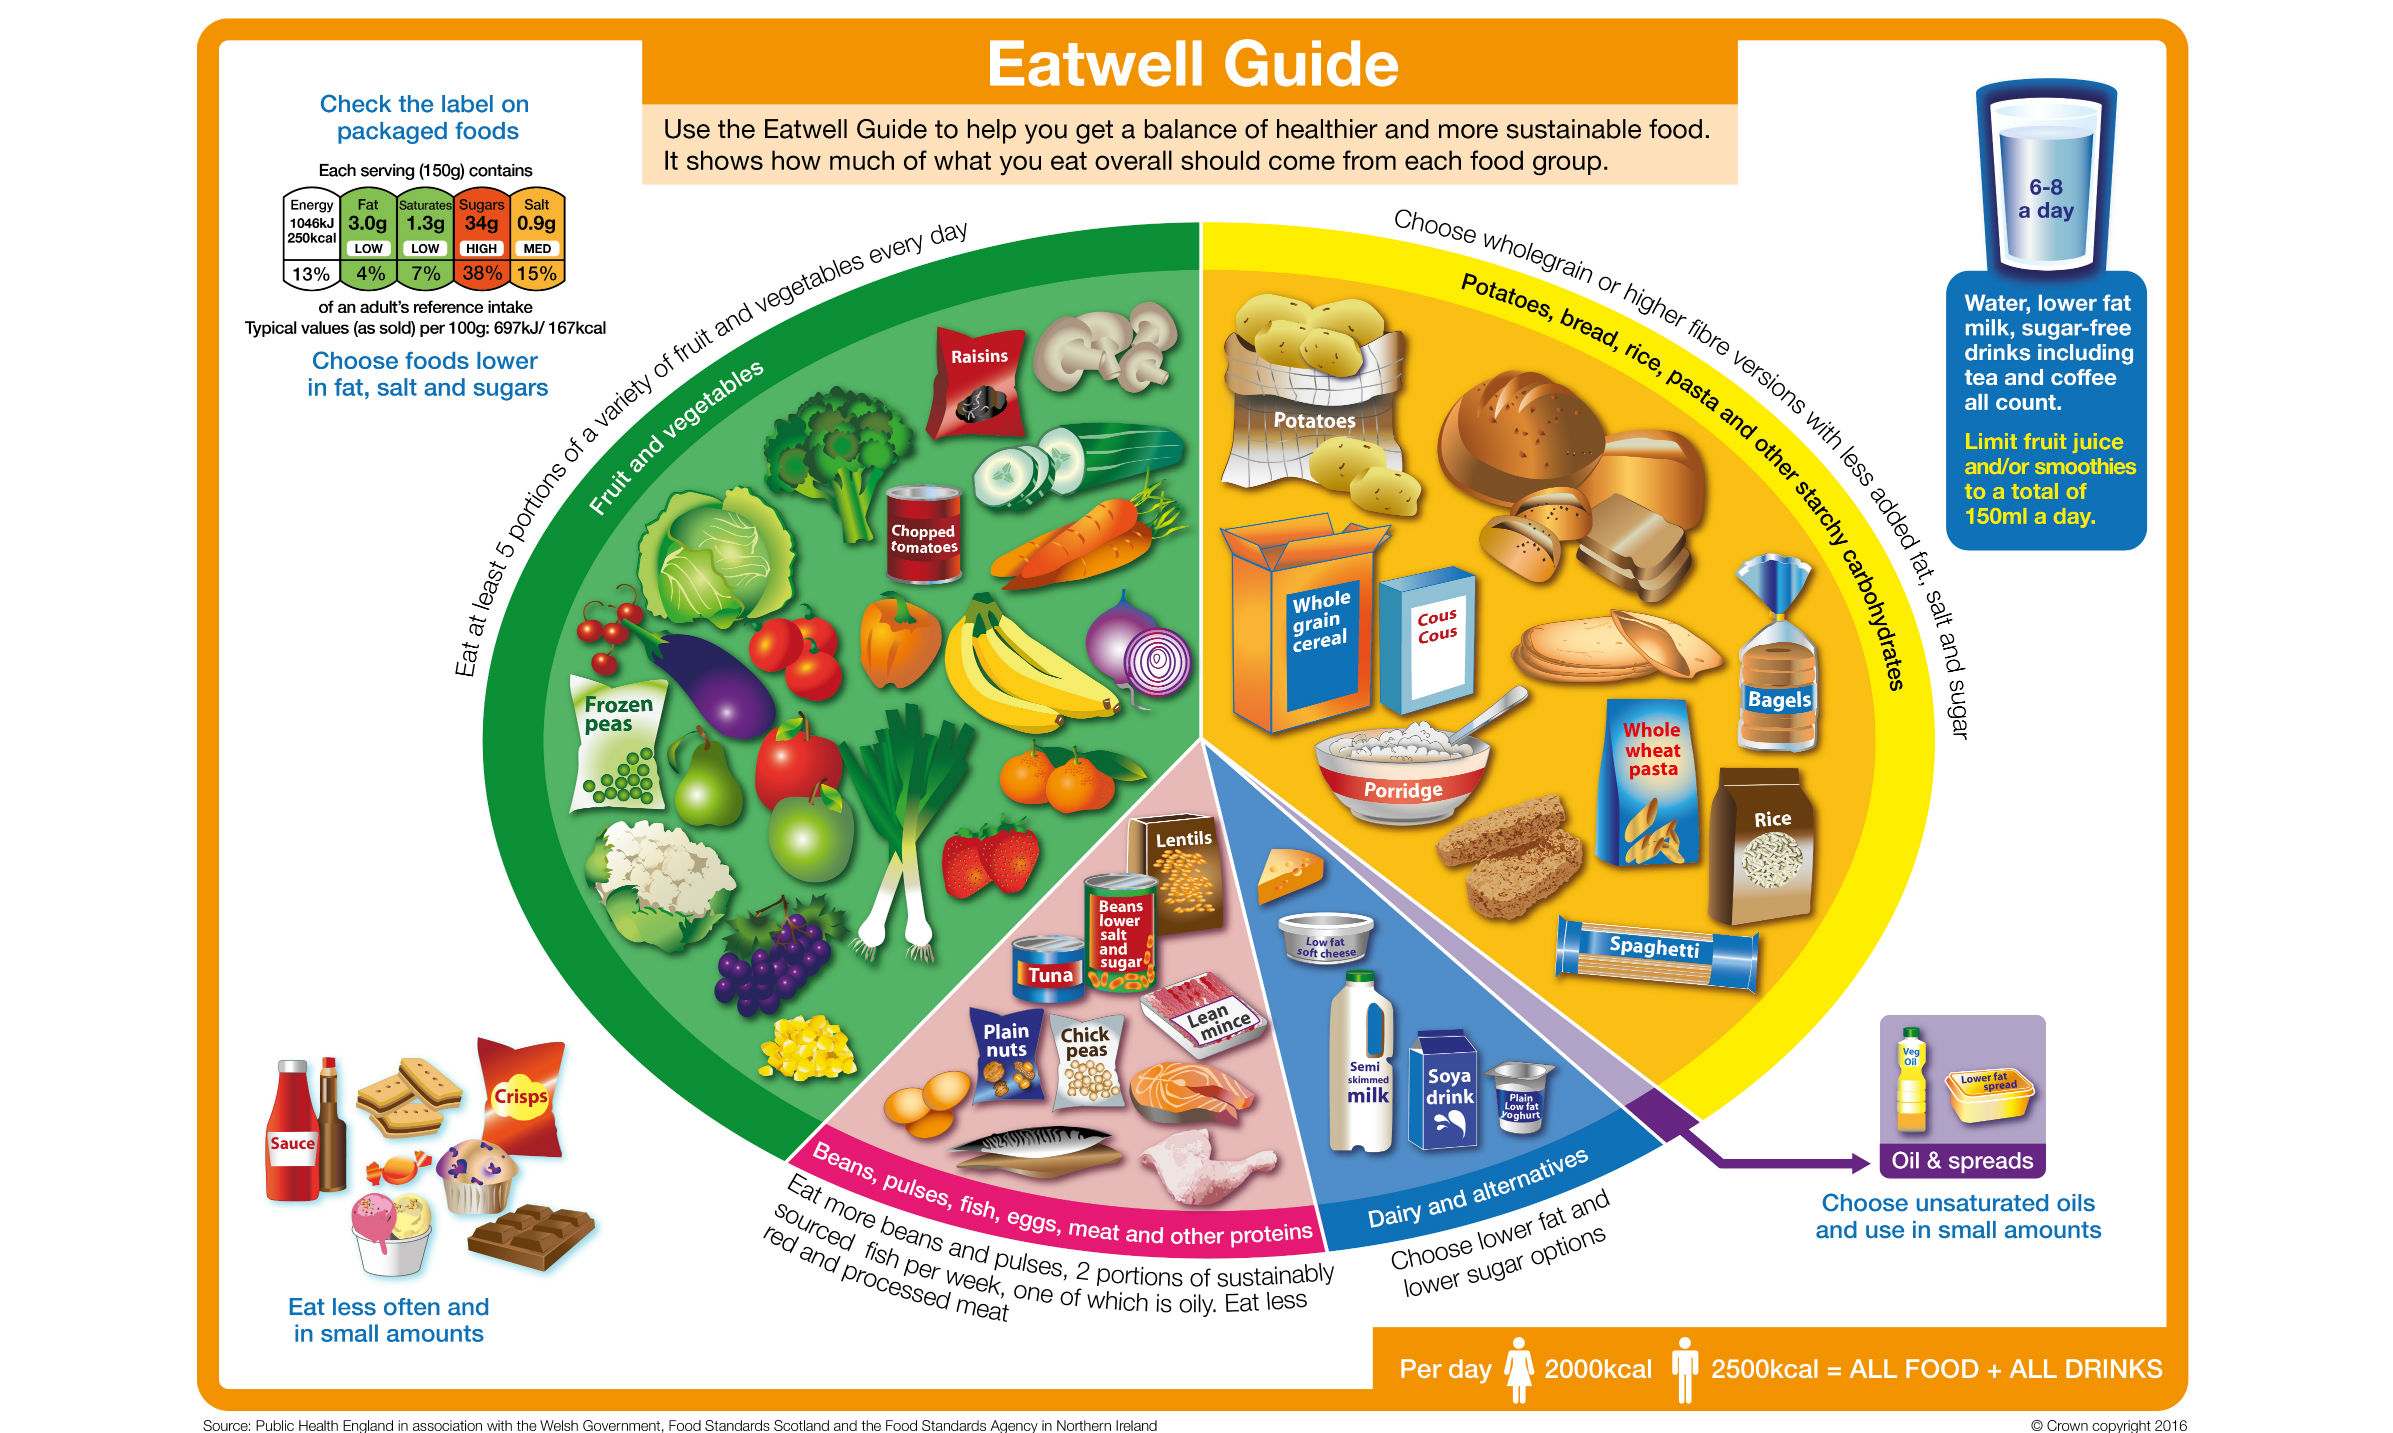 The 5 Main Groups The Eatwell Guide Divides The Foods